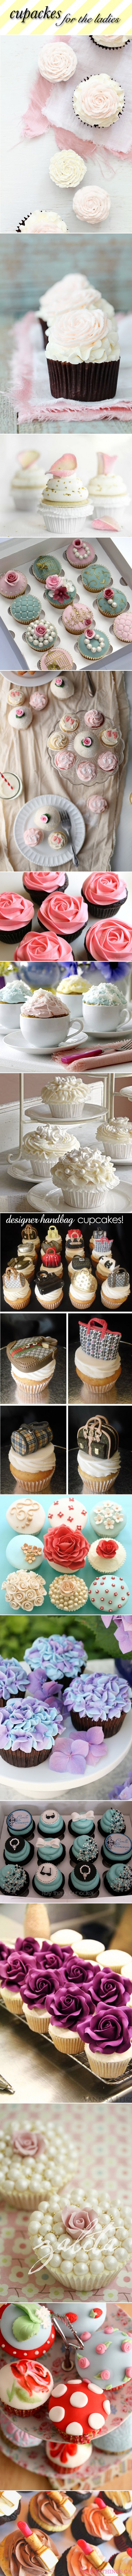 Cupcake creations. So many unique ideas and designs.